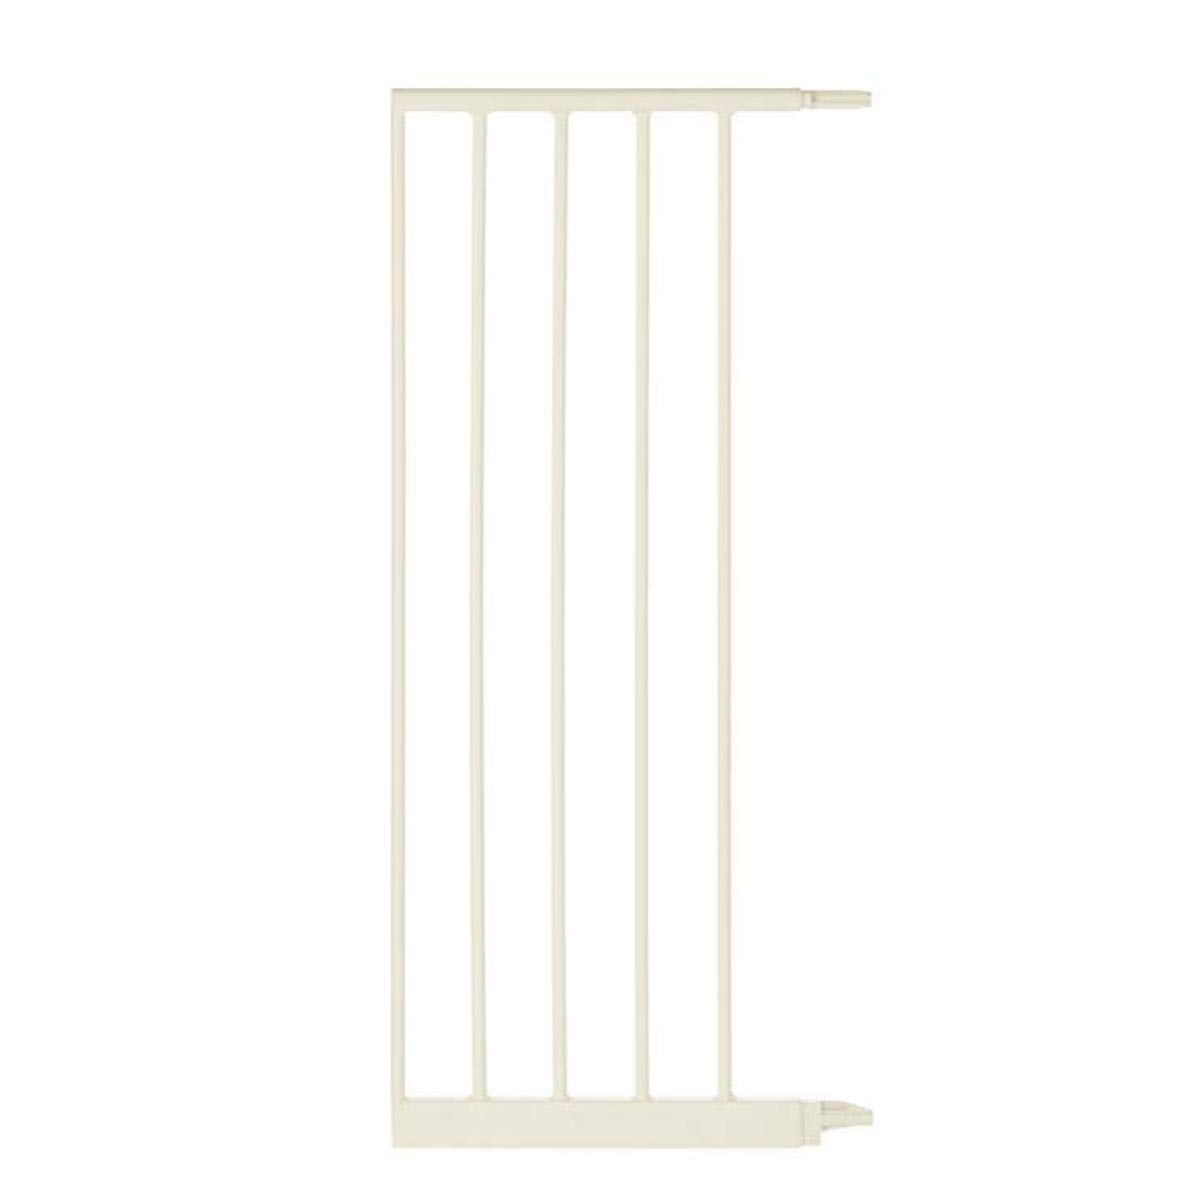 North states 5-Bar Extension for Soft White Tall Wide Portico Arch Baby Gate Add extension for a gate up to 60.5 wide Adds 13.42 width, Soft White